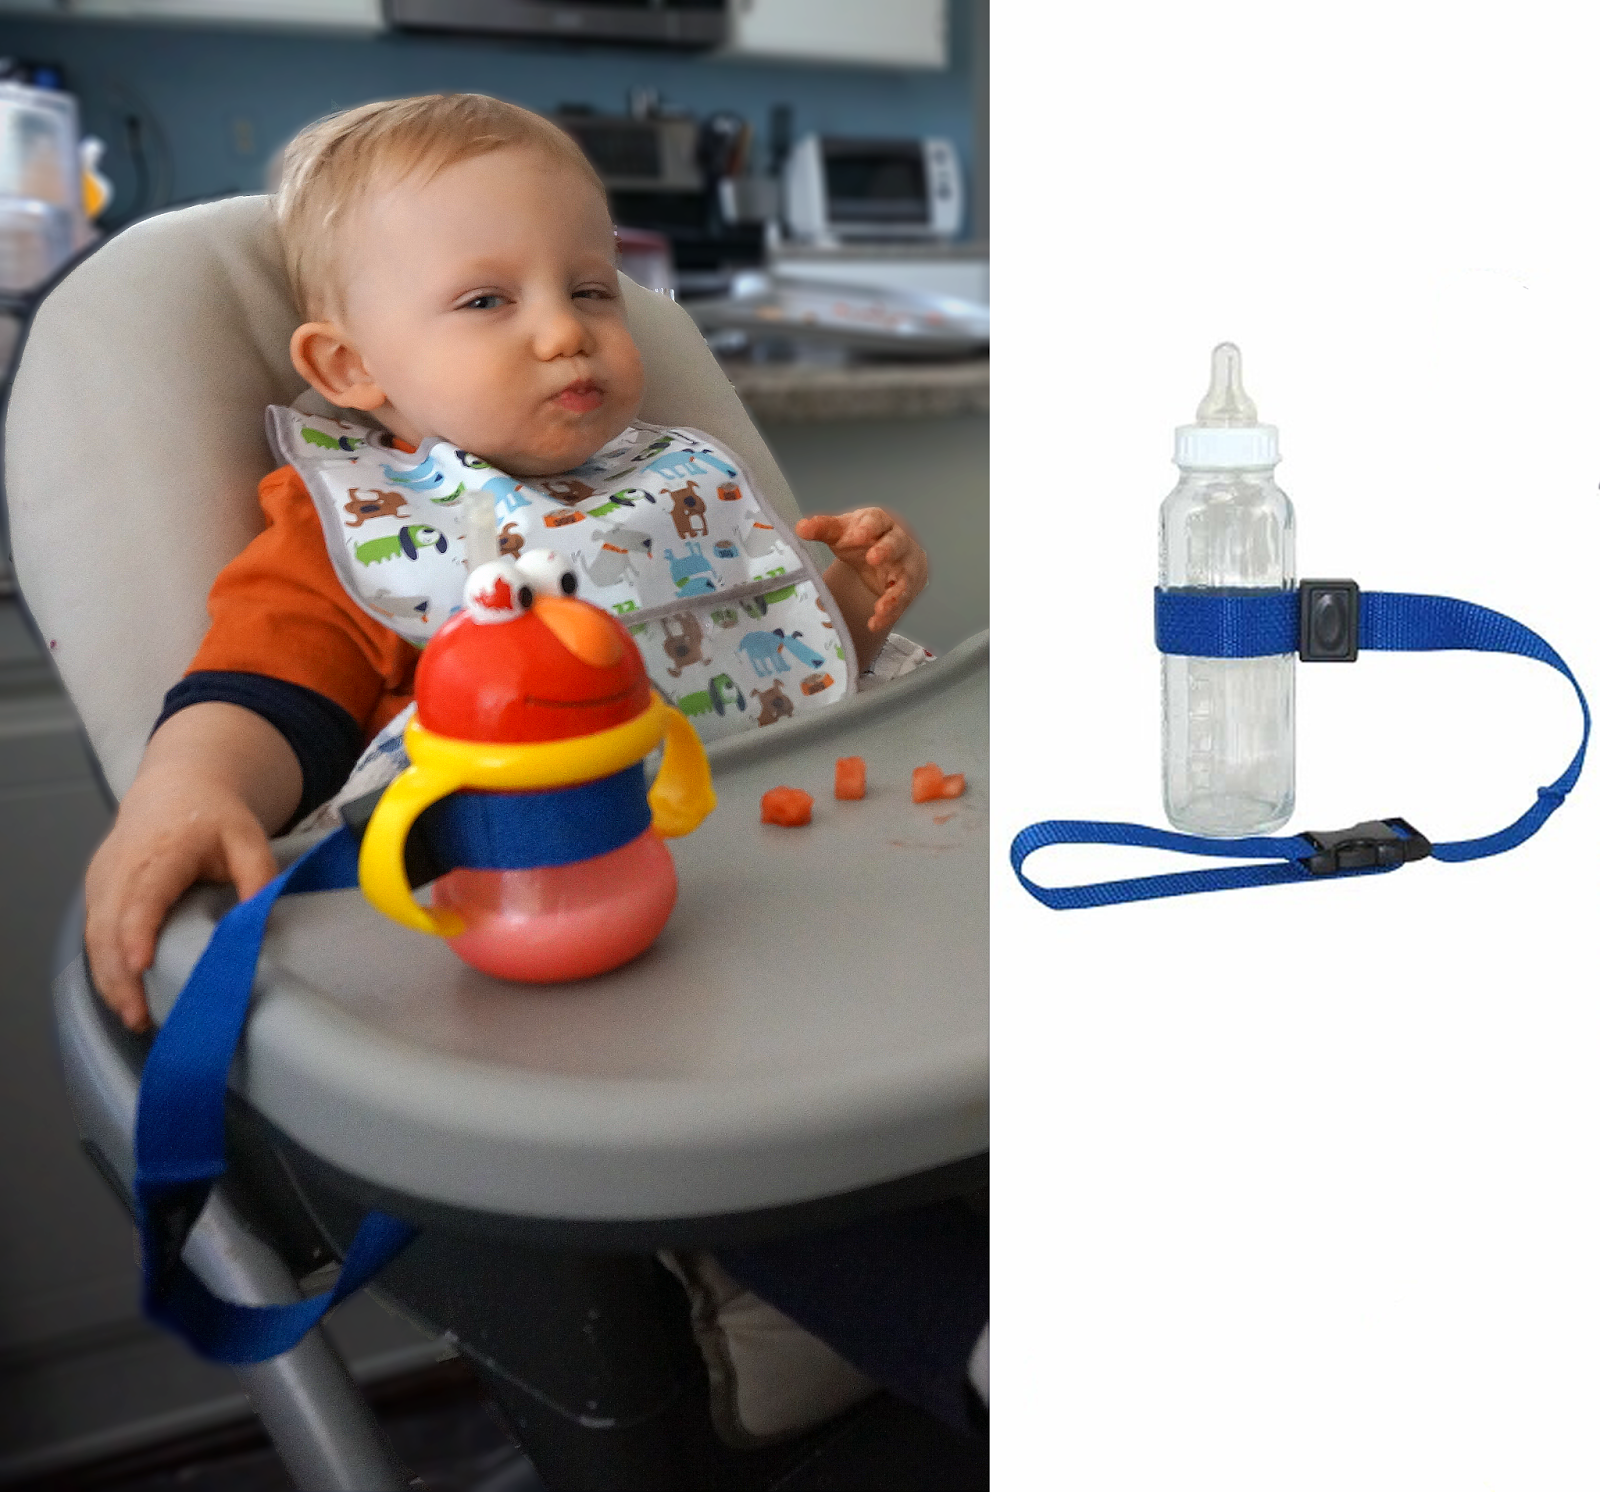 Toddler Must Haves - a bottle and toy strap to keep your kid from playing the throwing game.